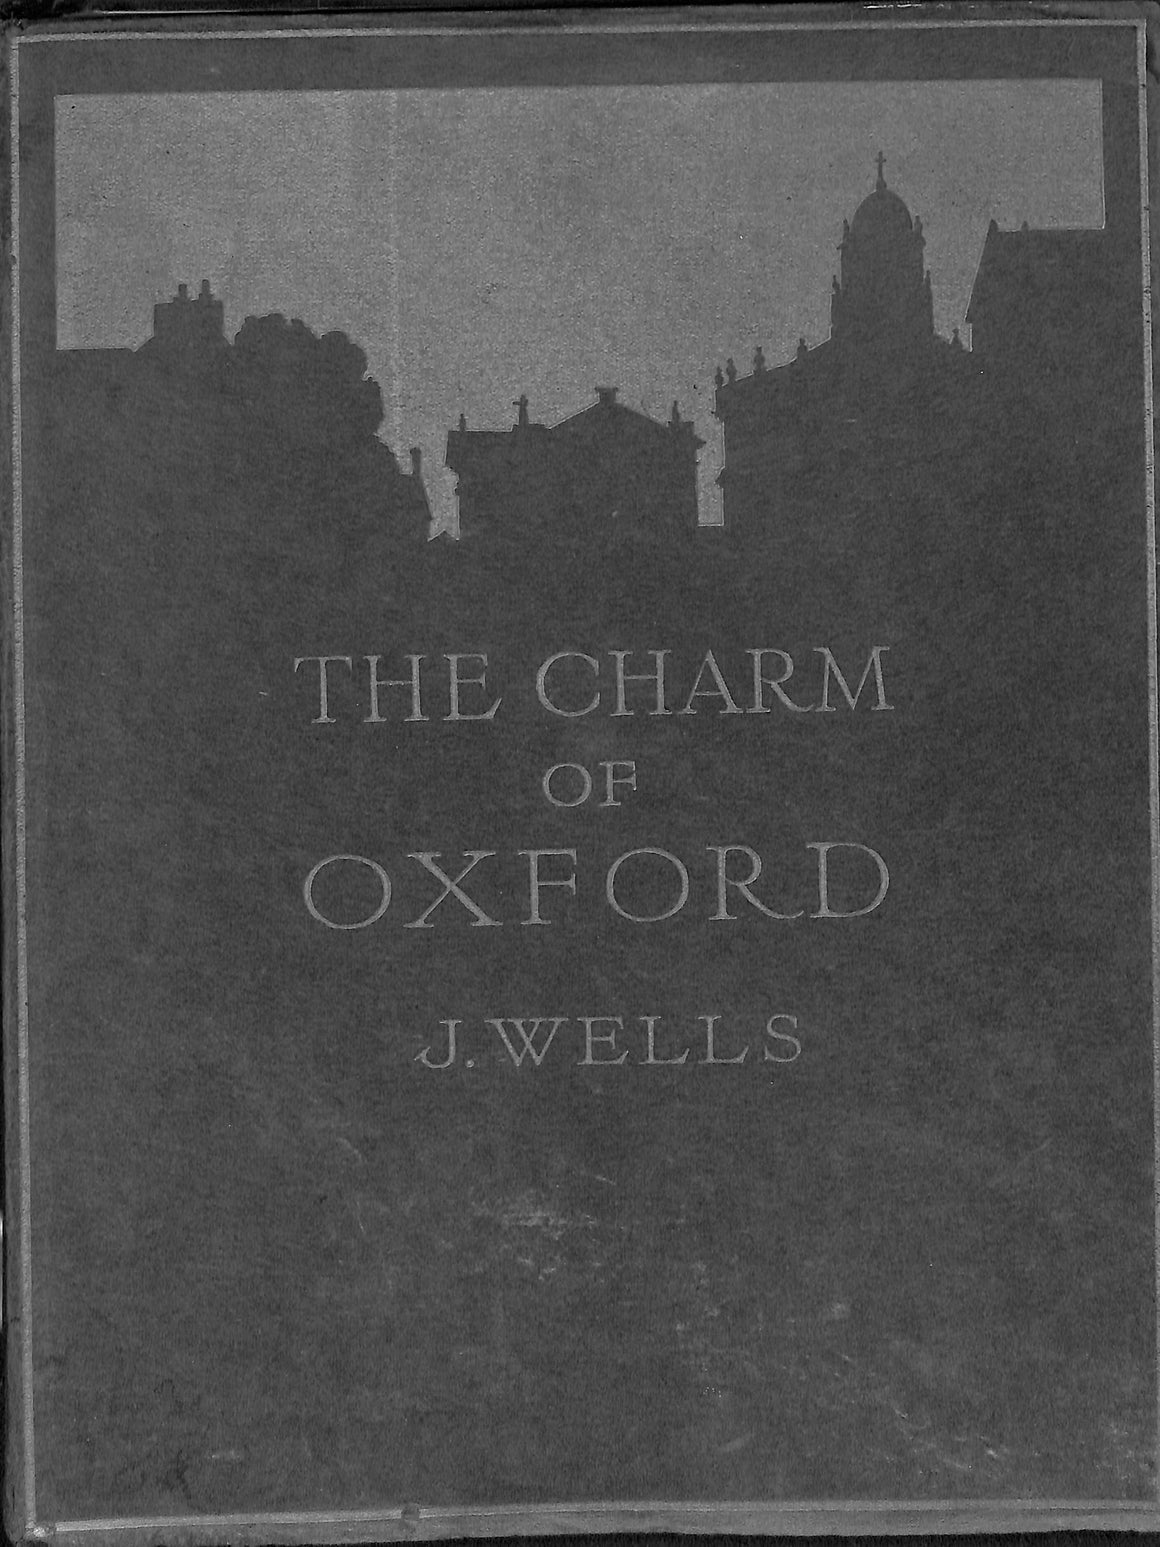 The Charm of Oxford